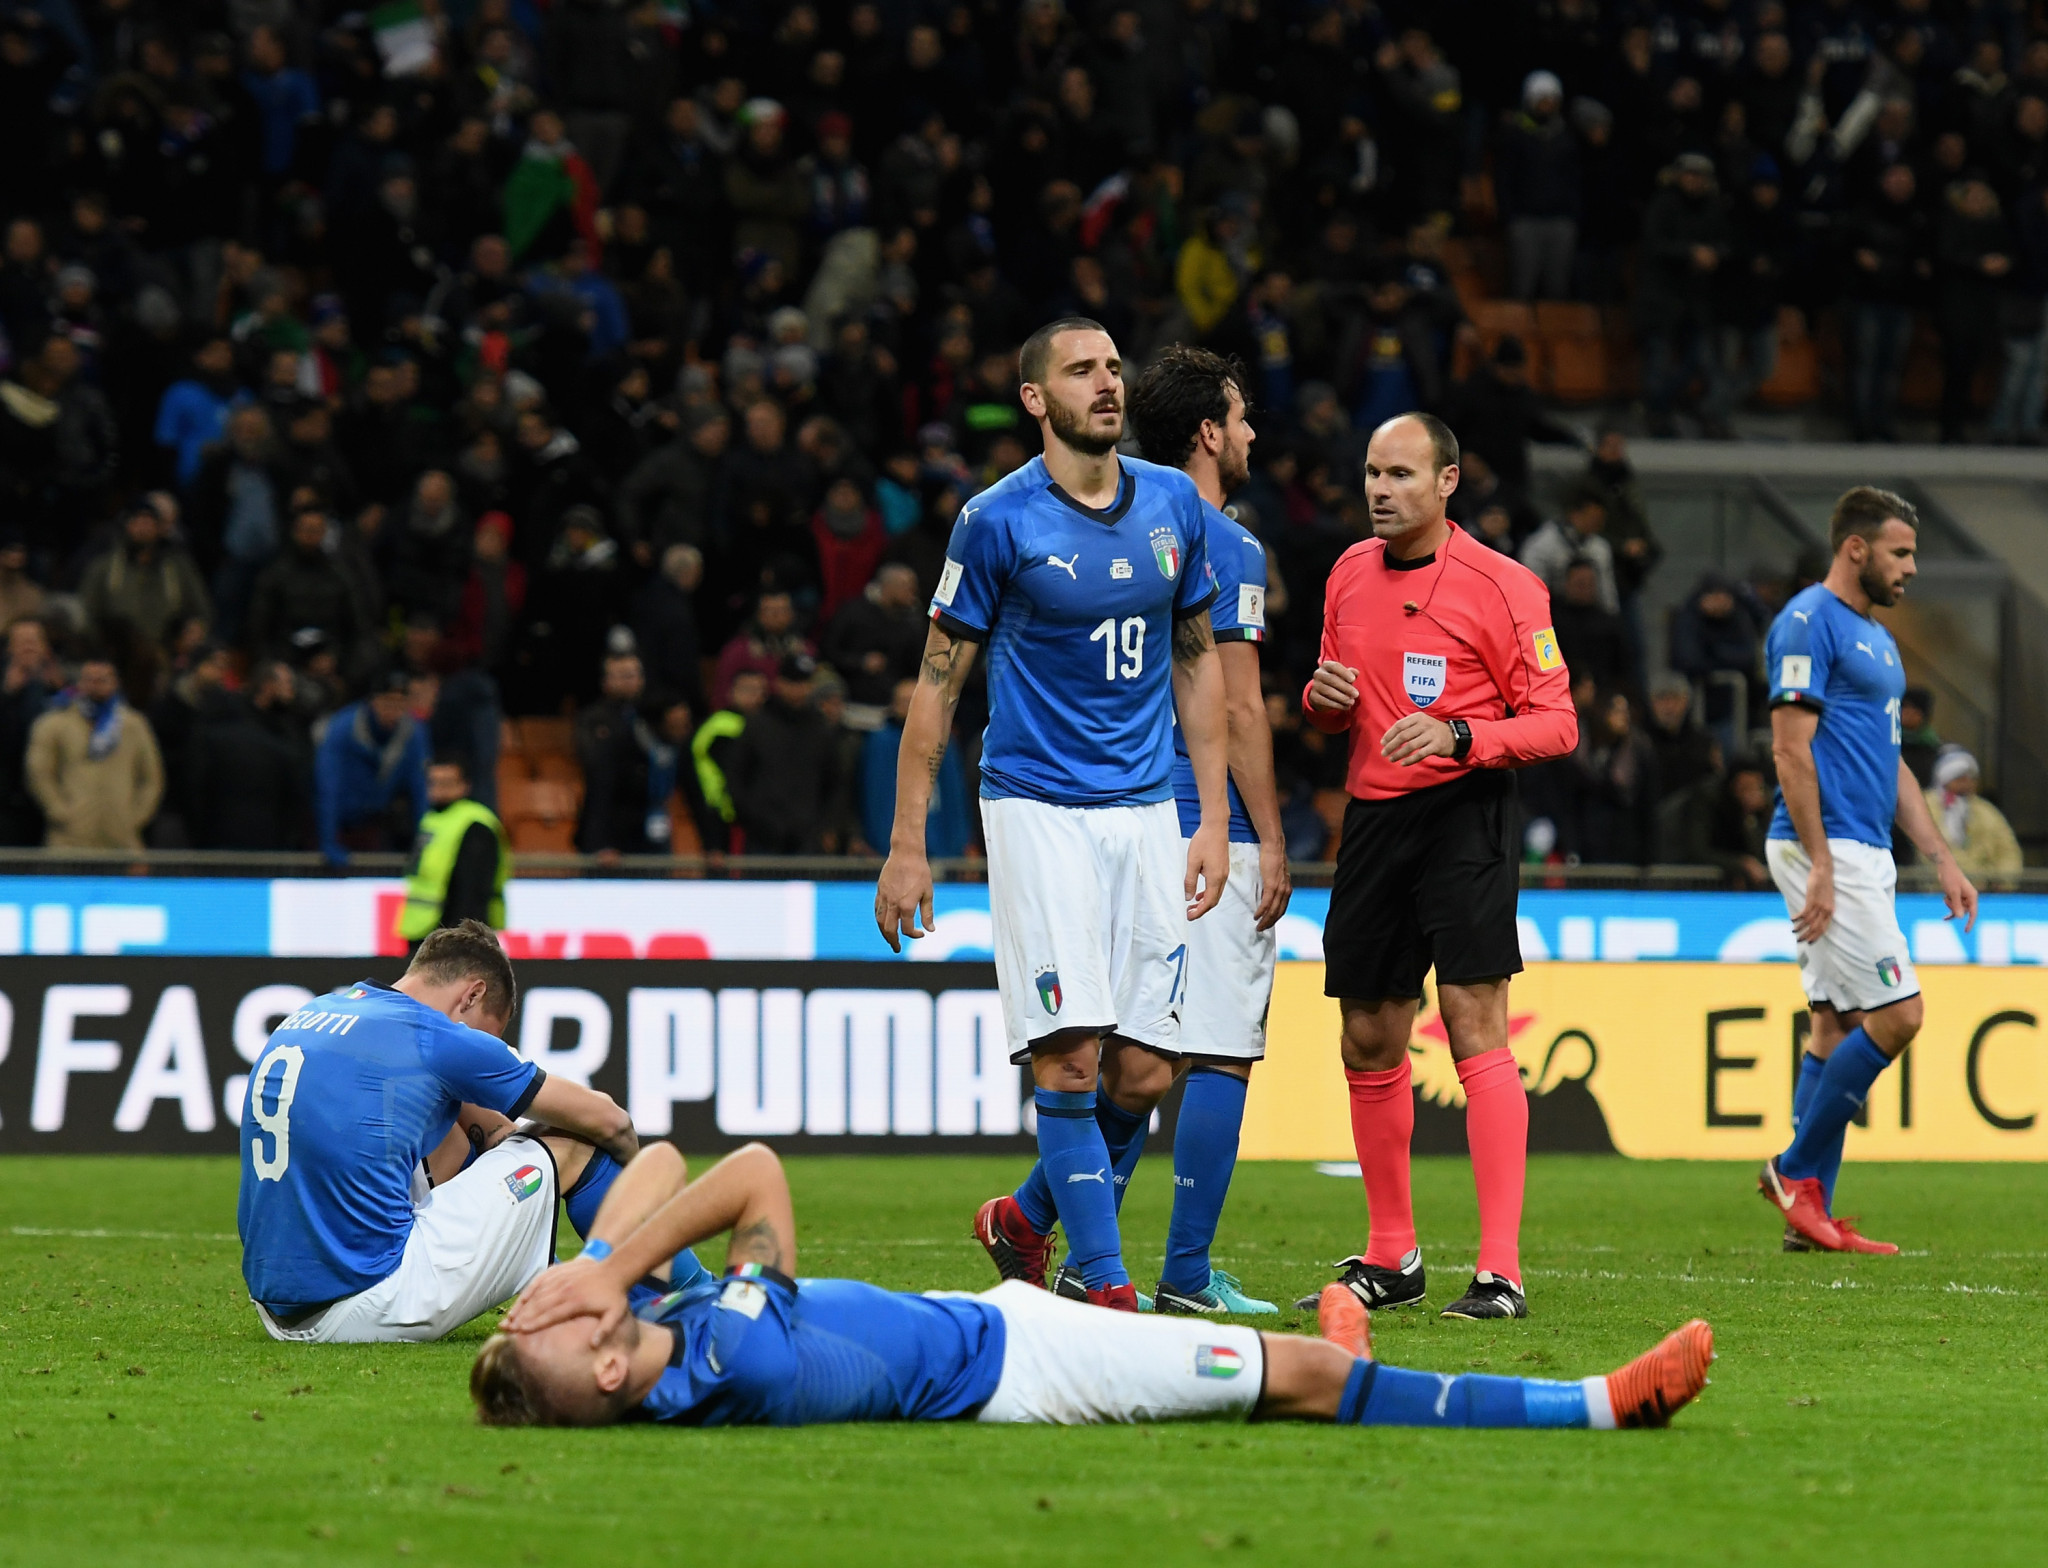 Italy failed to qualify for the World Cup after a 0-0 draw with Sweden in the second leg of their play-off ©Getty Images